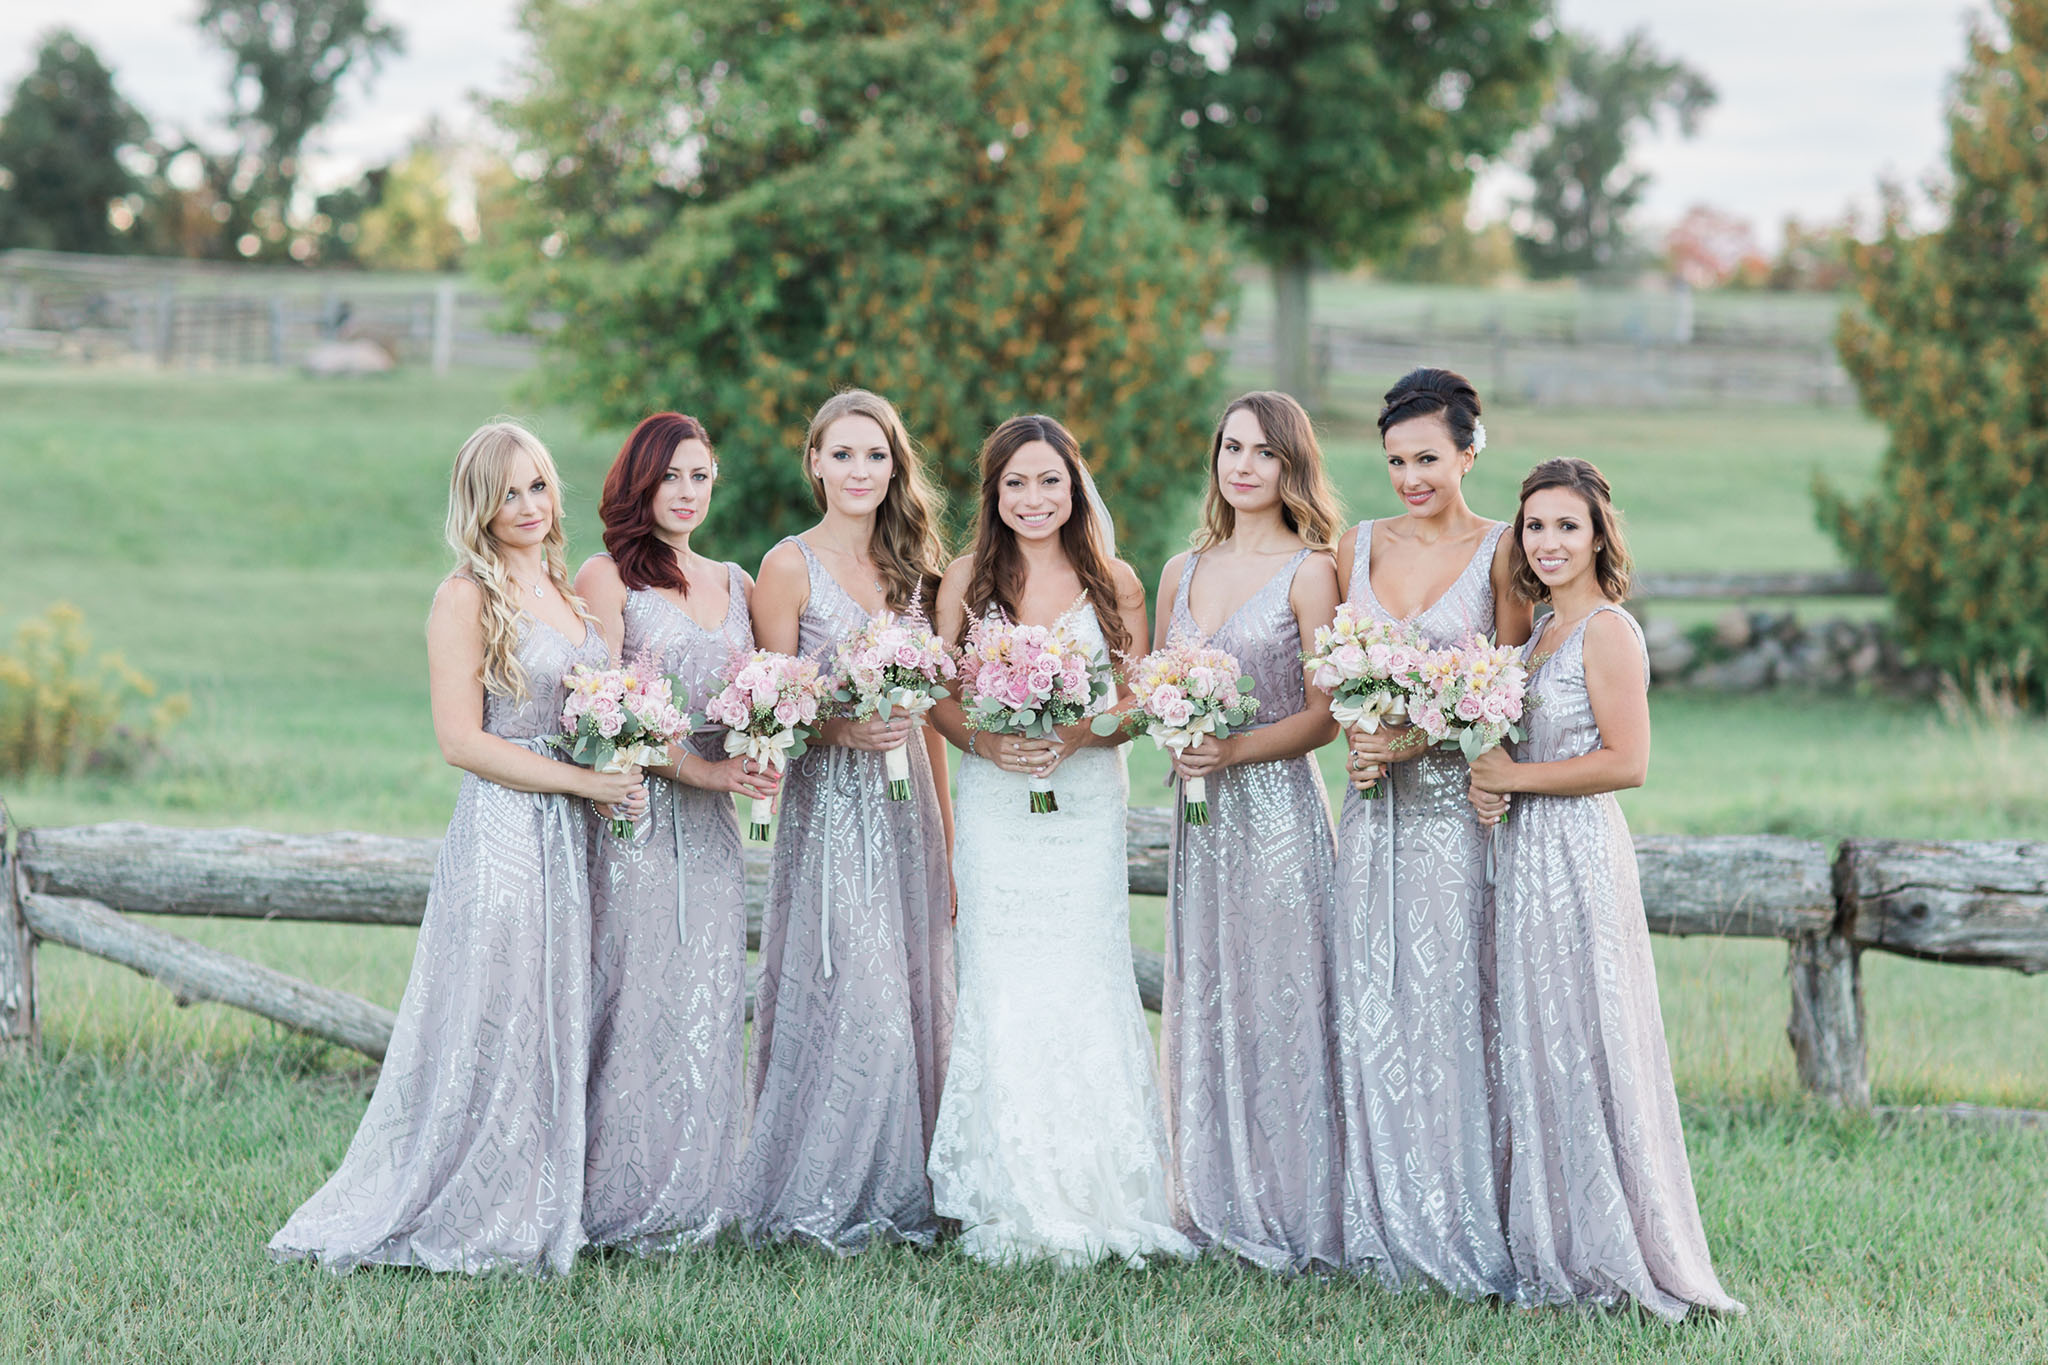 Bridal Party Photos. One bride with 6 bridesmaids, all holding flowers